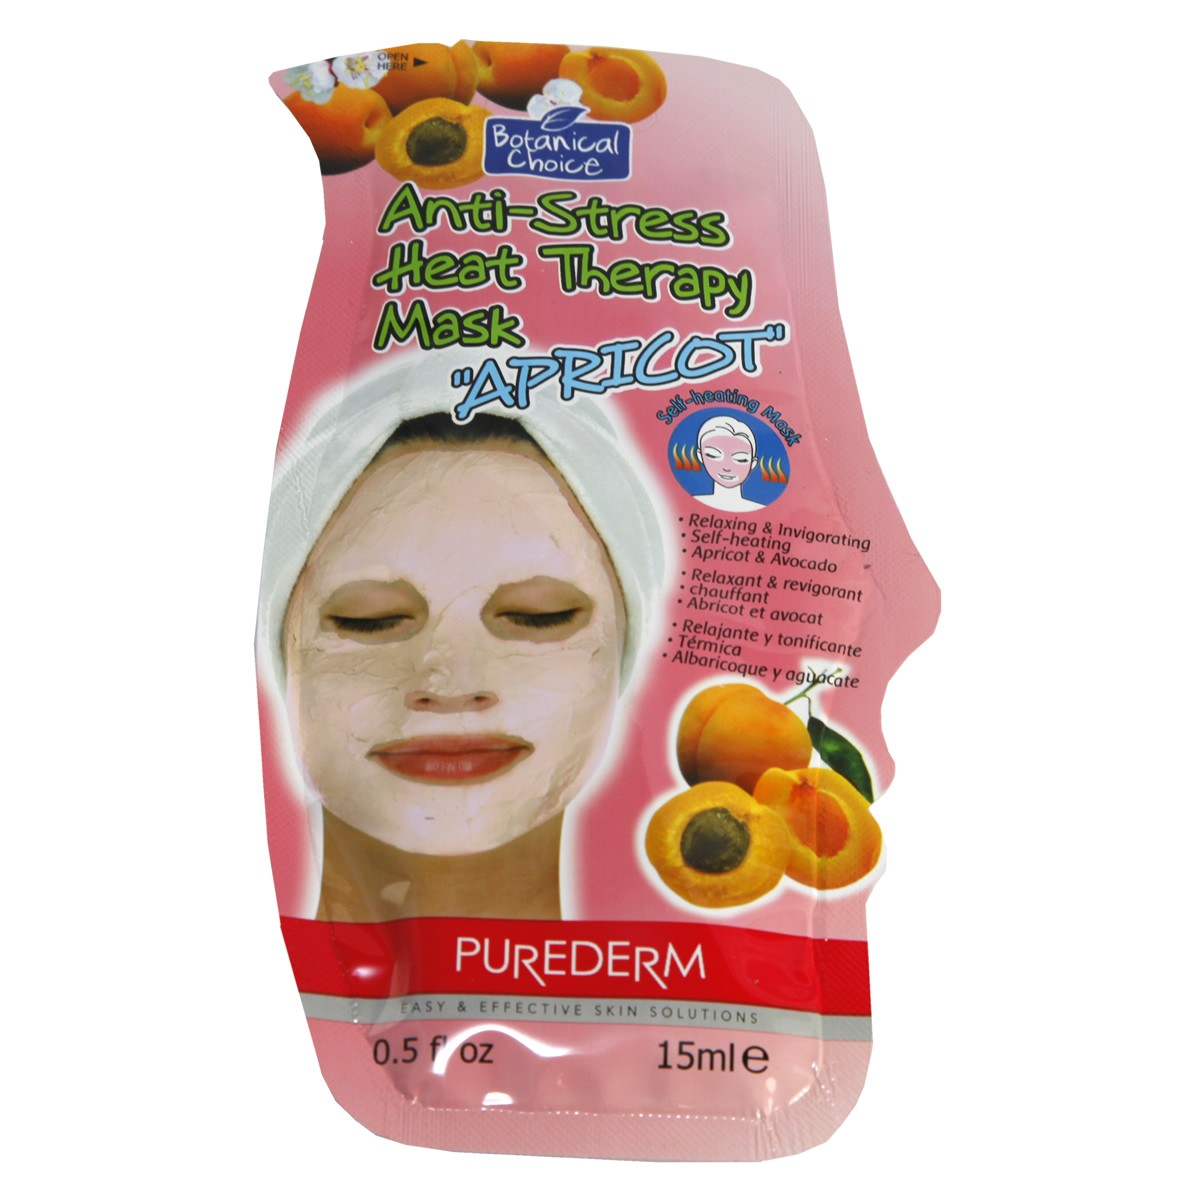 PureDerm Anti- Stress Heat Therapy Mask with Apricot